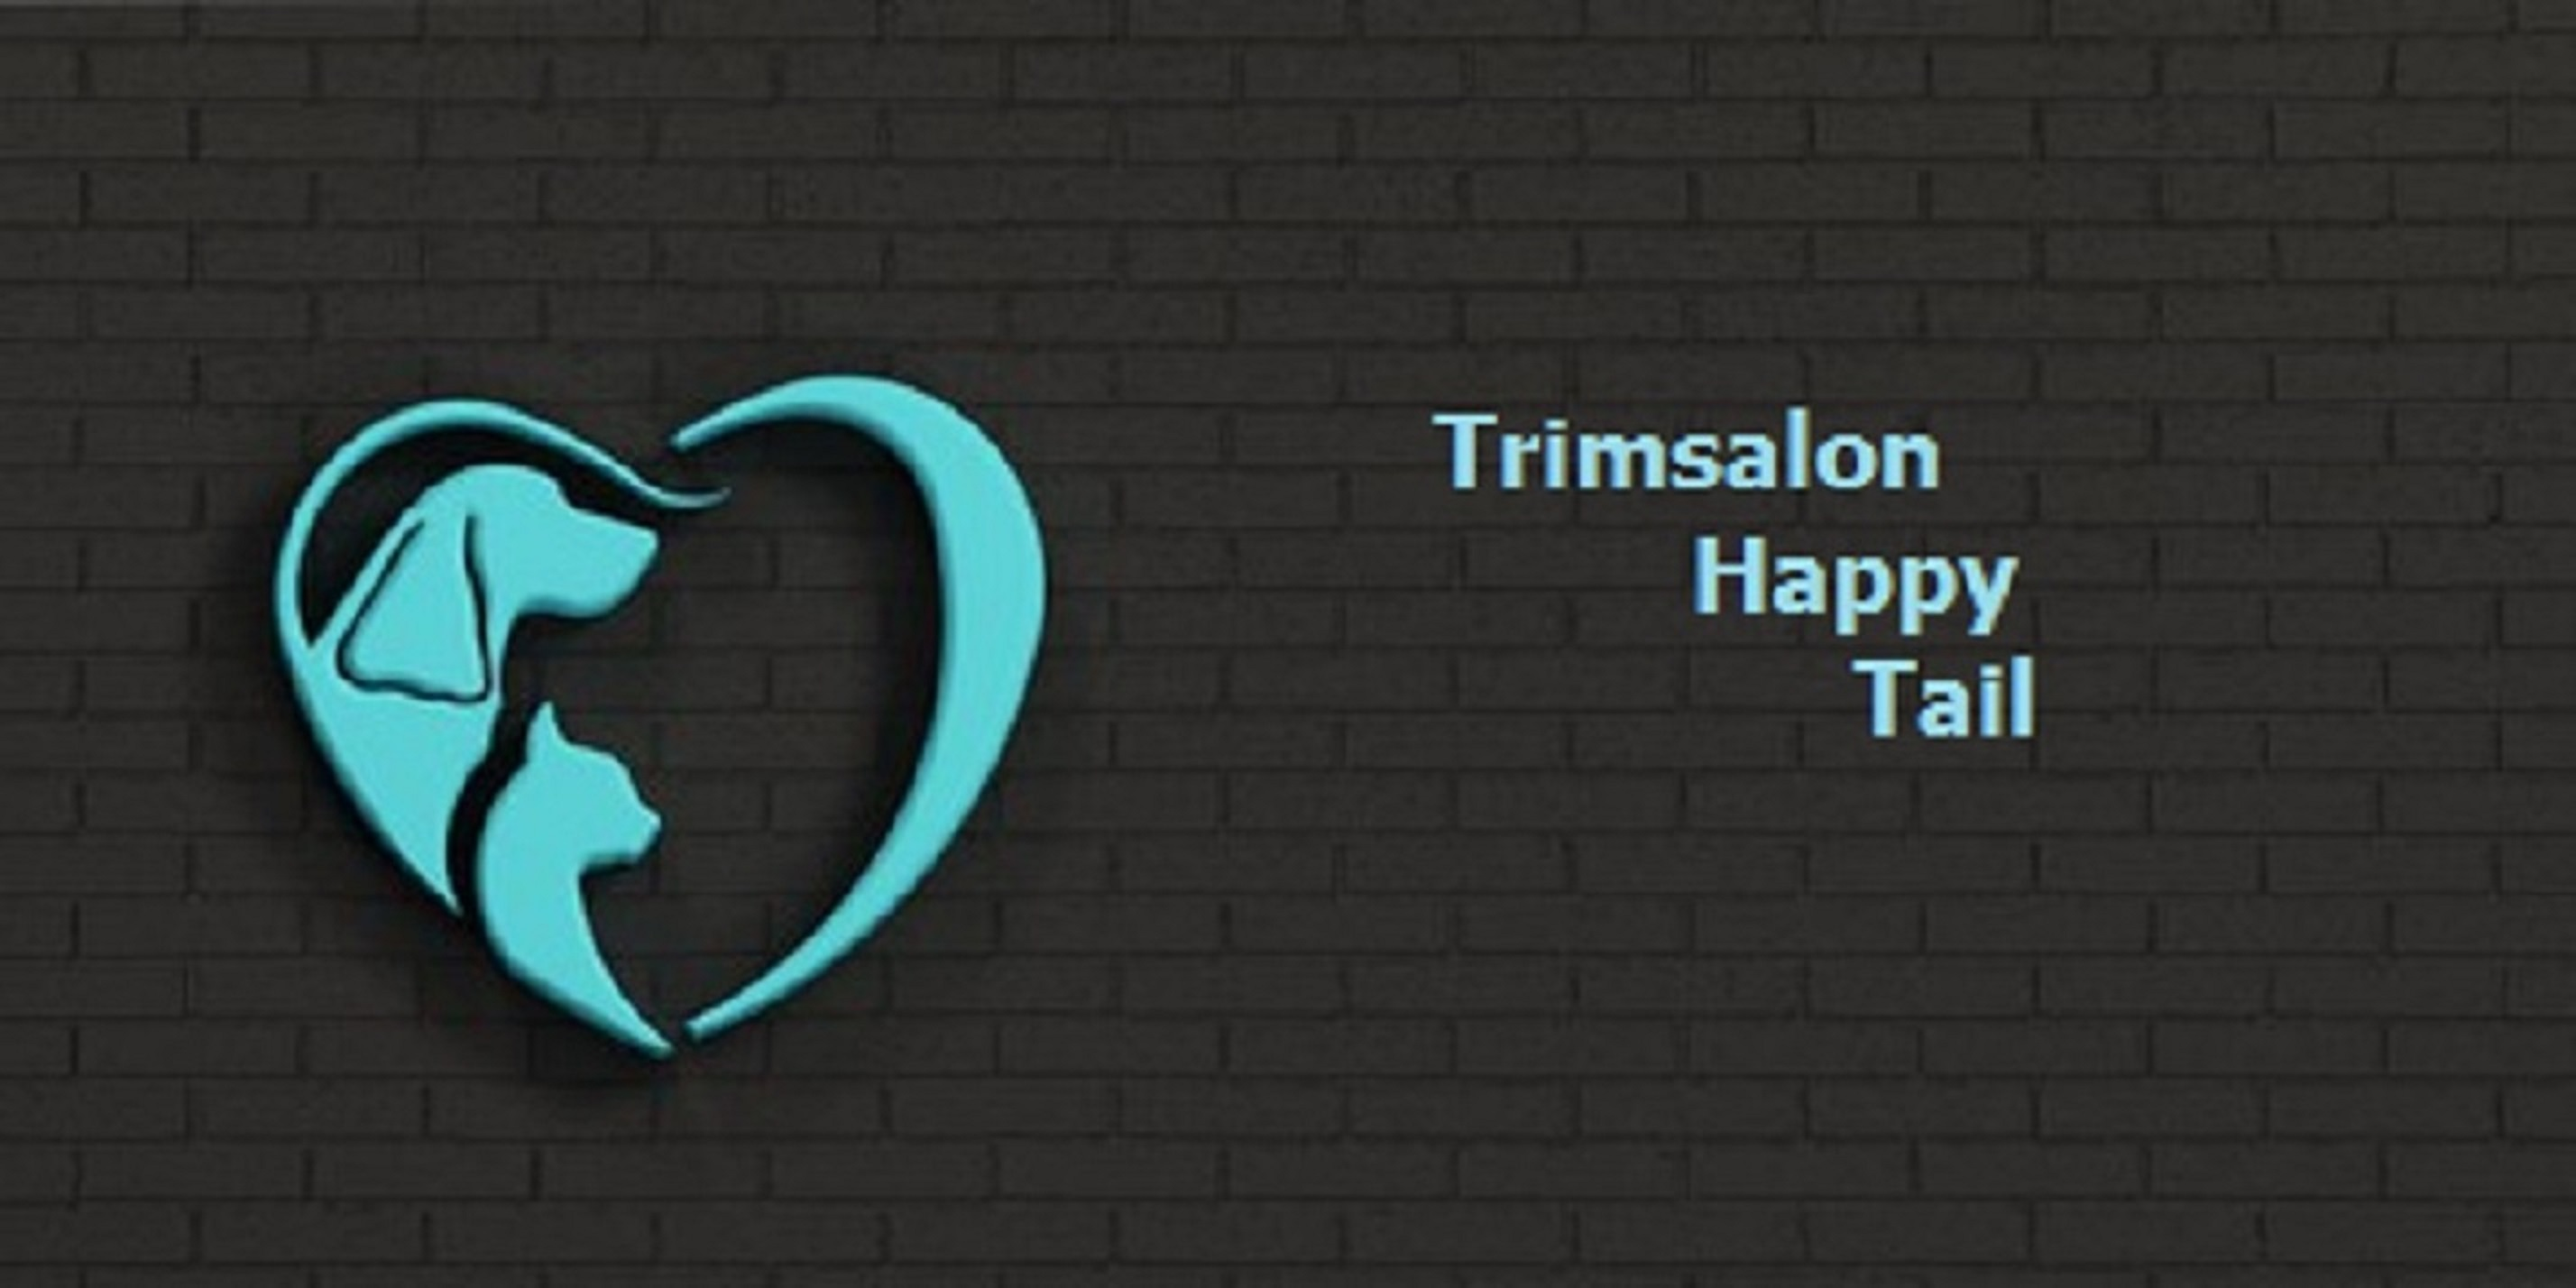 Trimsalon Happy Tail